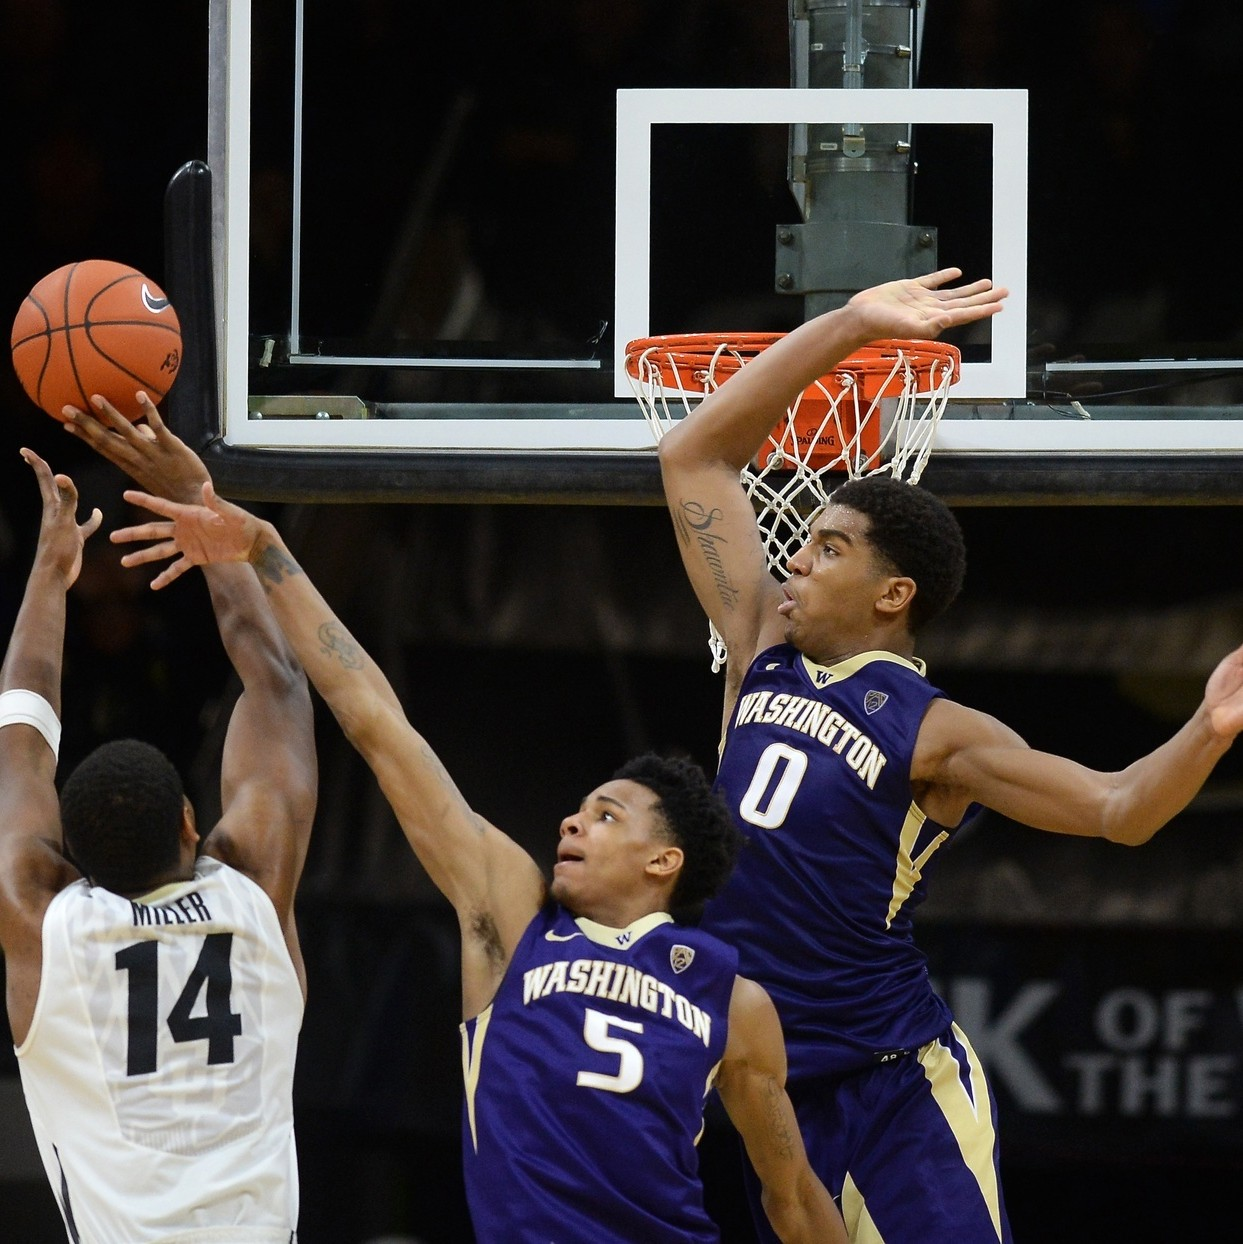 Dragan-bender-and-marquese-chriss-are-raising-the-ceiling-in-phoenix-1468445776.jpg?crop=0